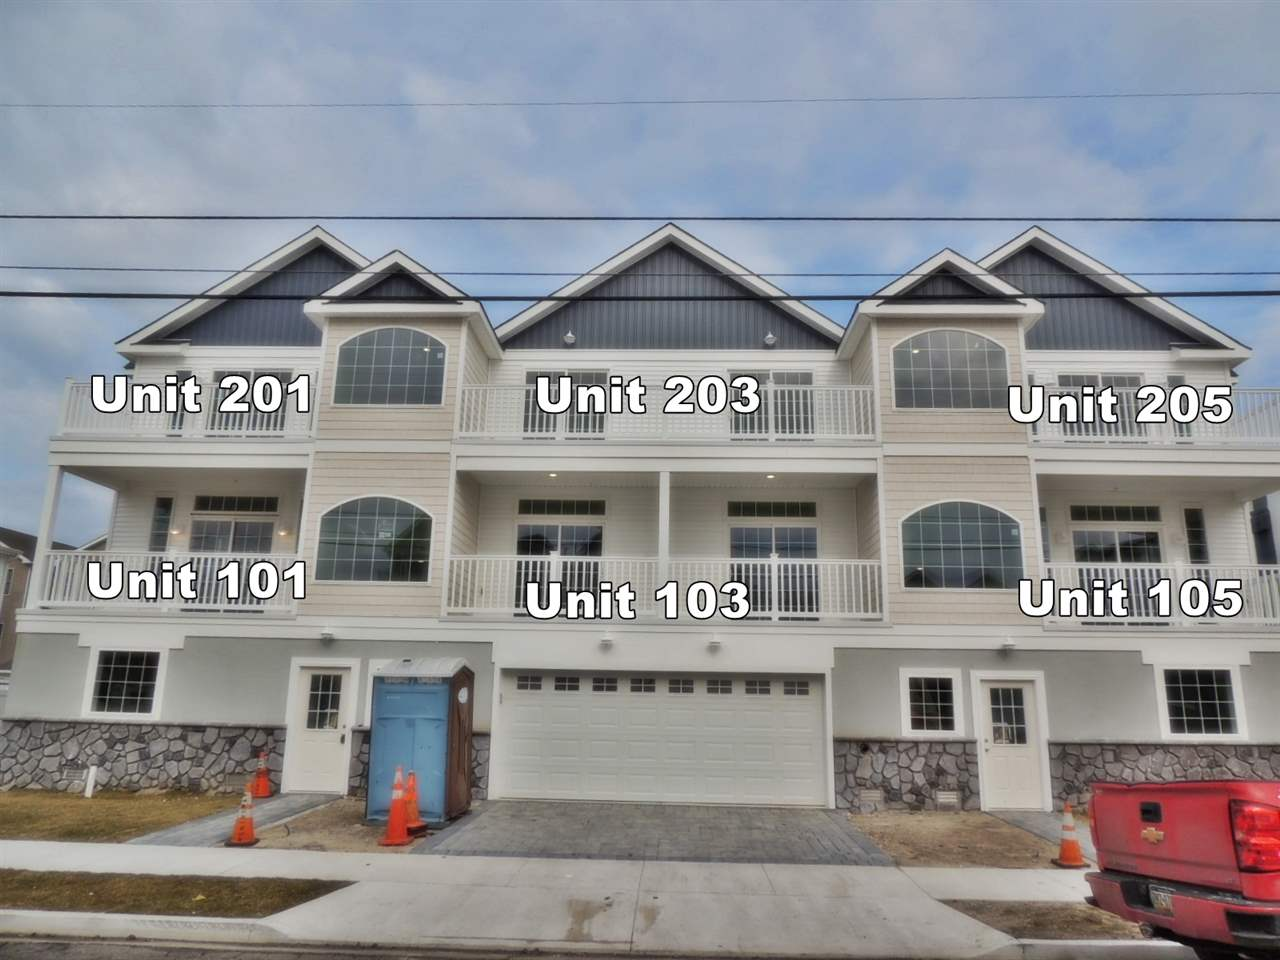 421, Unit 101 23rd Avenue, North Wildwood